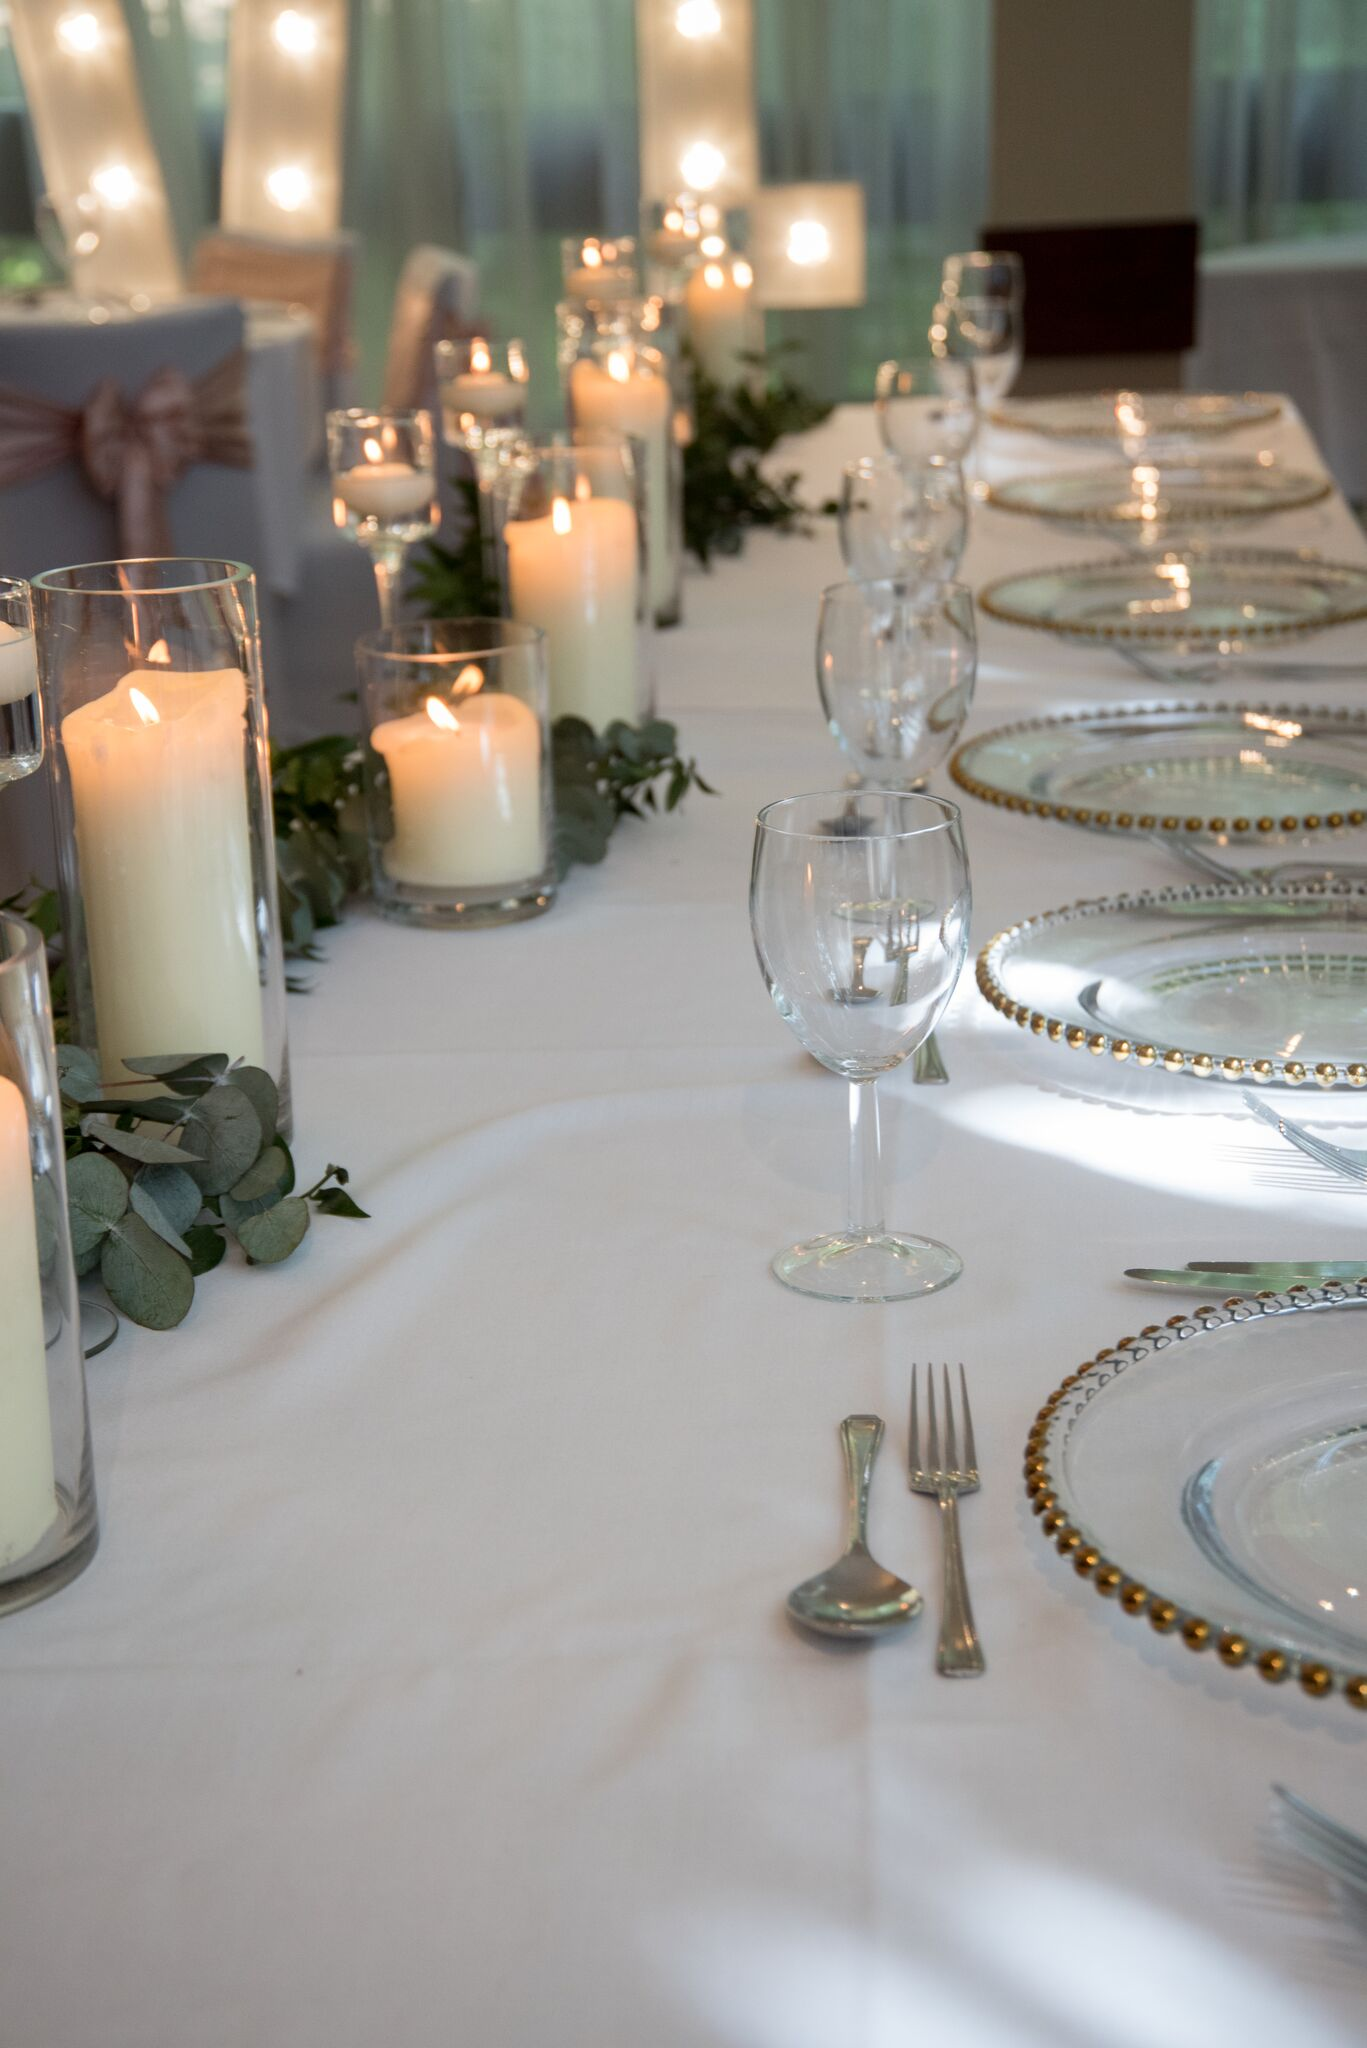 Cylinder & Floating candles with greenary Photography - Adele Drummond Sophia's Final Touch - Venue Styling - Weddings